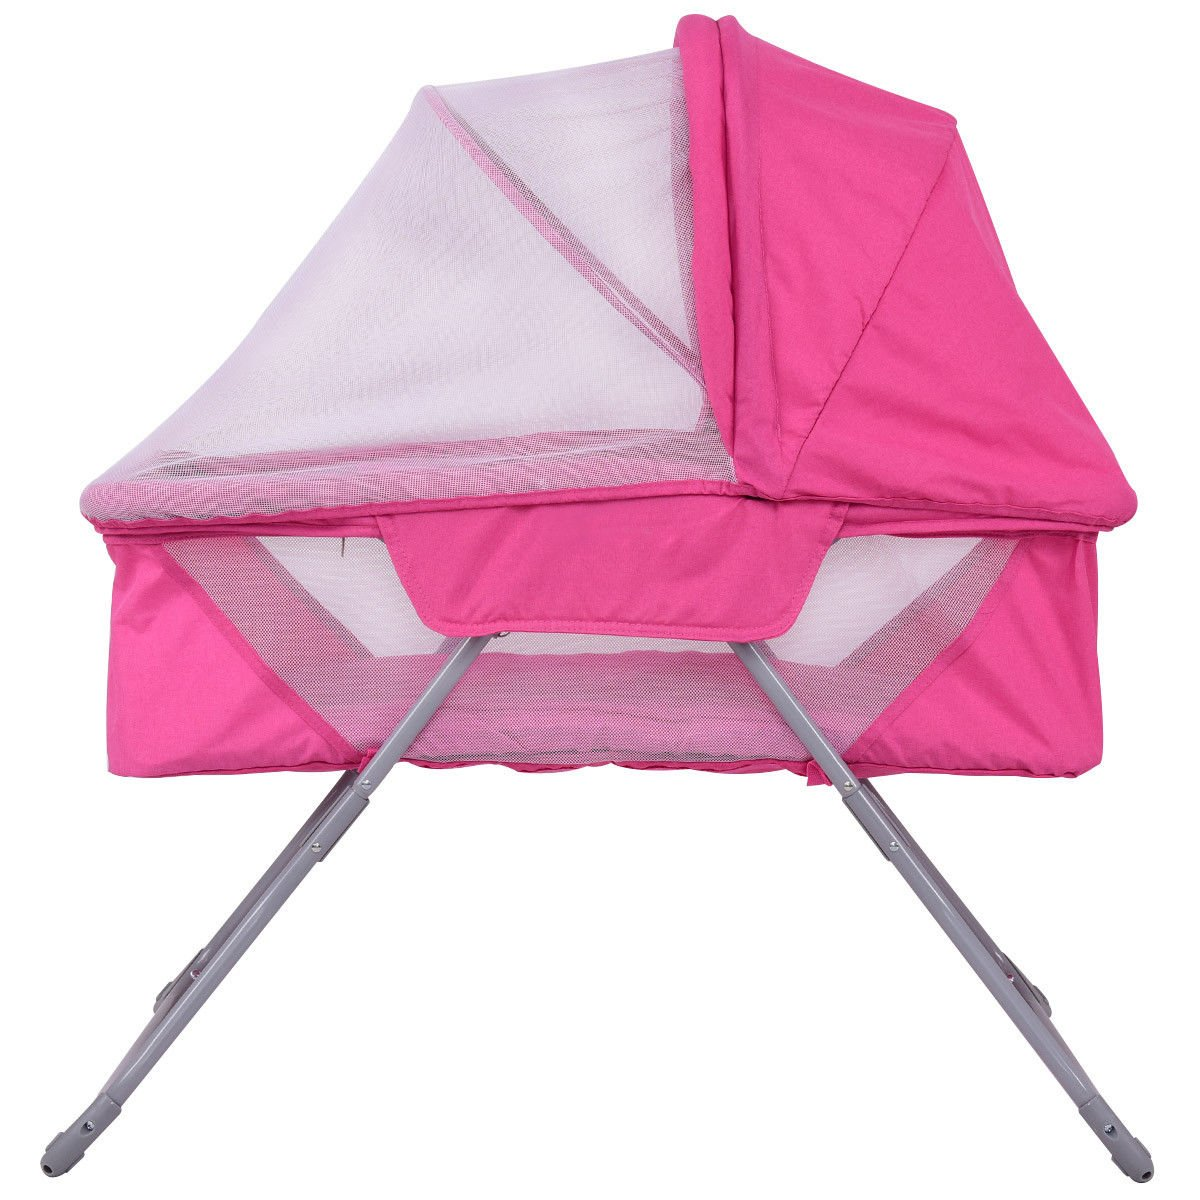 Foldable Rocking Bed with Mosquito Net /& Carrying Bag Pink Costzon Baby Bassinet